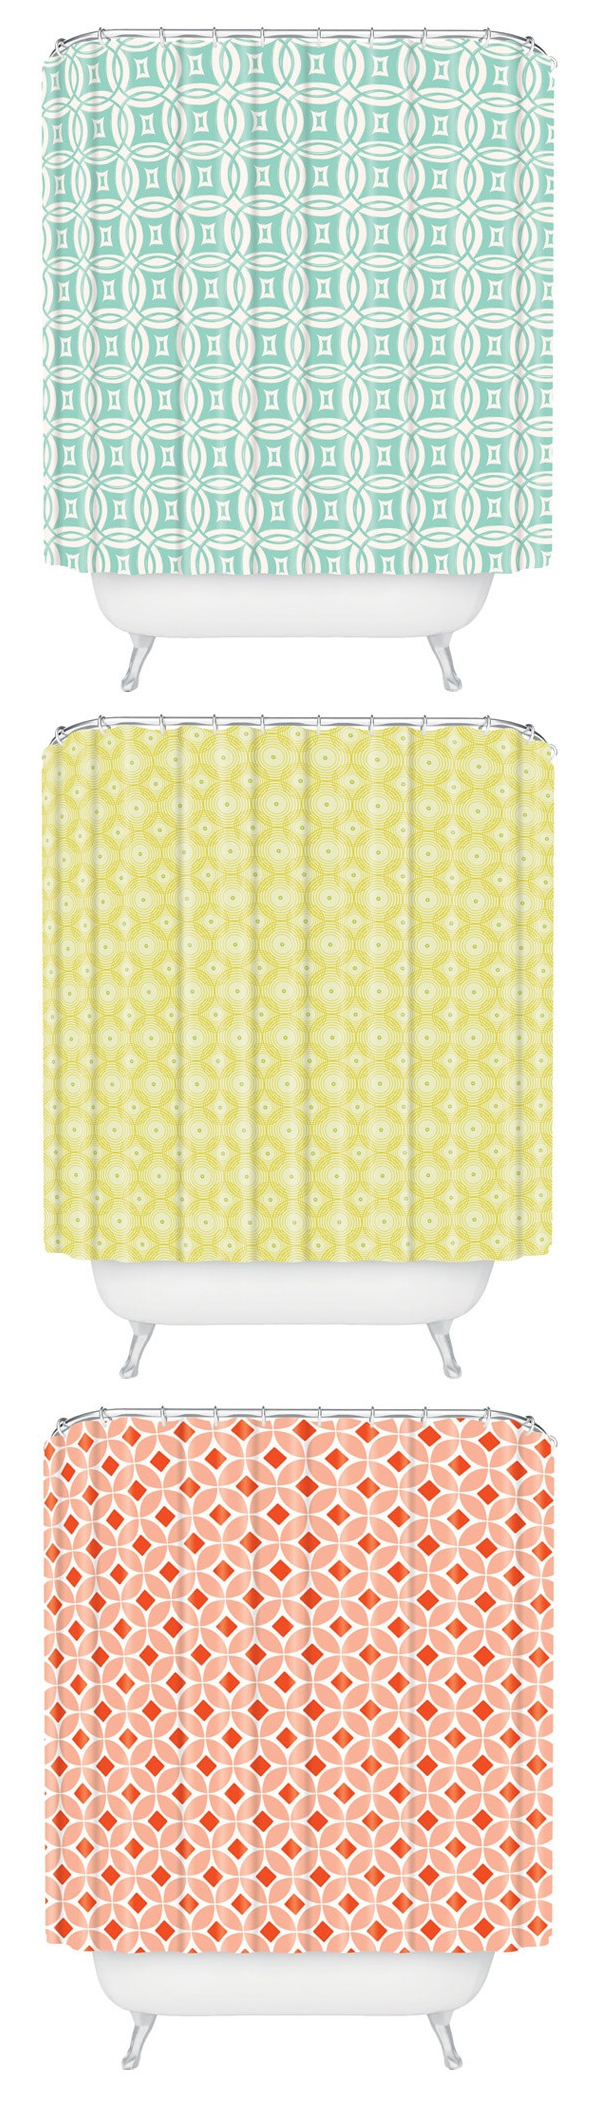 Coral and mint shower curtain - Such Cute Shower Curtains Love The Colors Pastel Yellow Mint And Coral